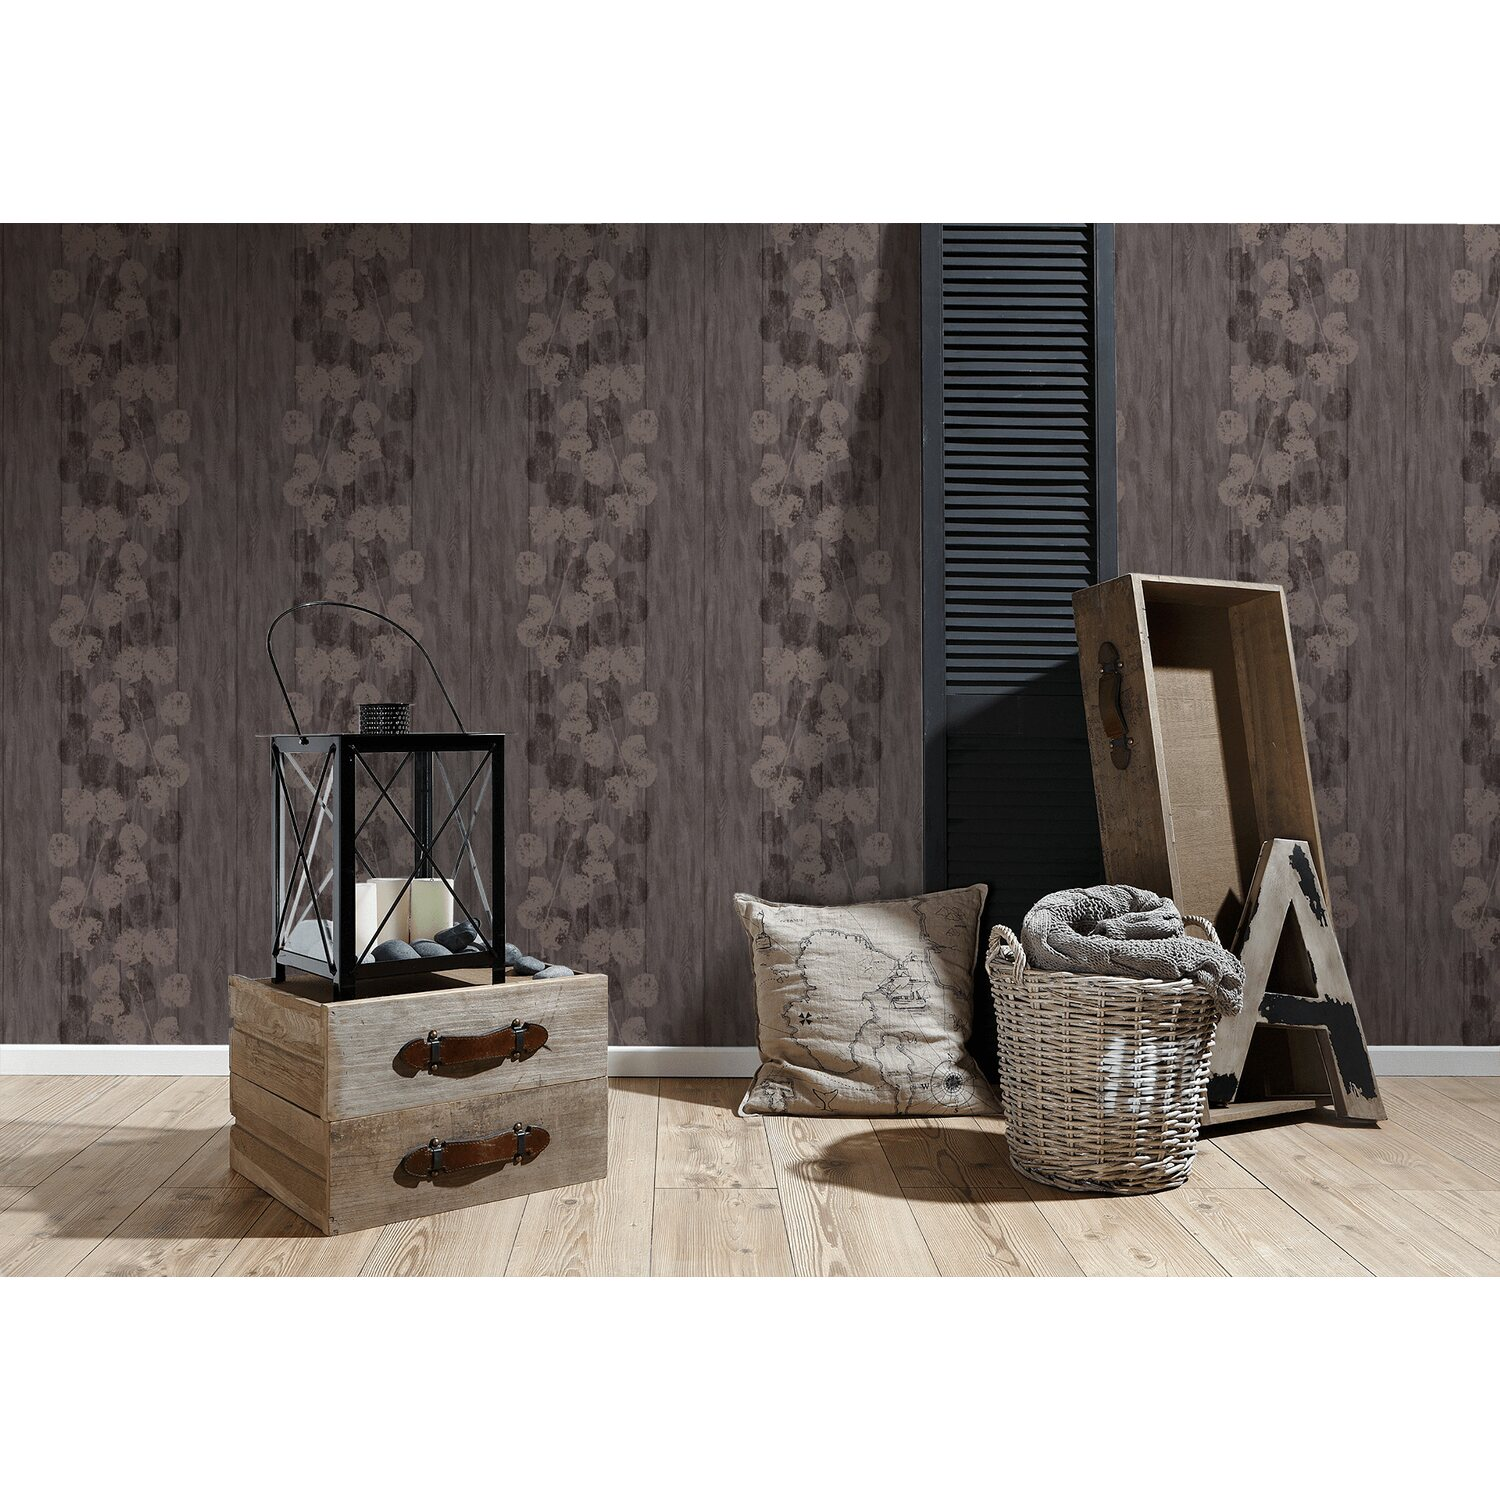 brigitte home vliestapete blumenranke braun kaufen bei obi. Black Bedroom Furniture Sets. Home Design Ideas